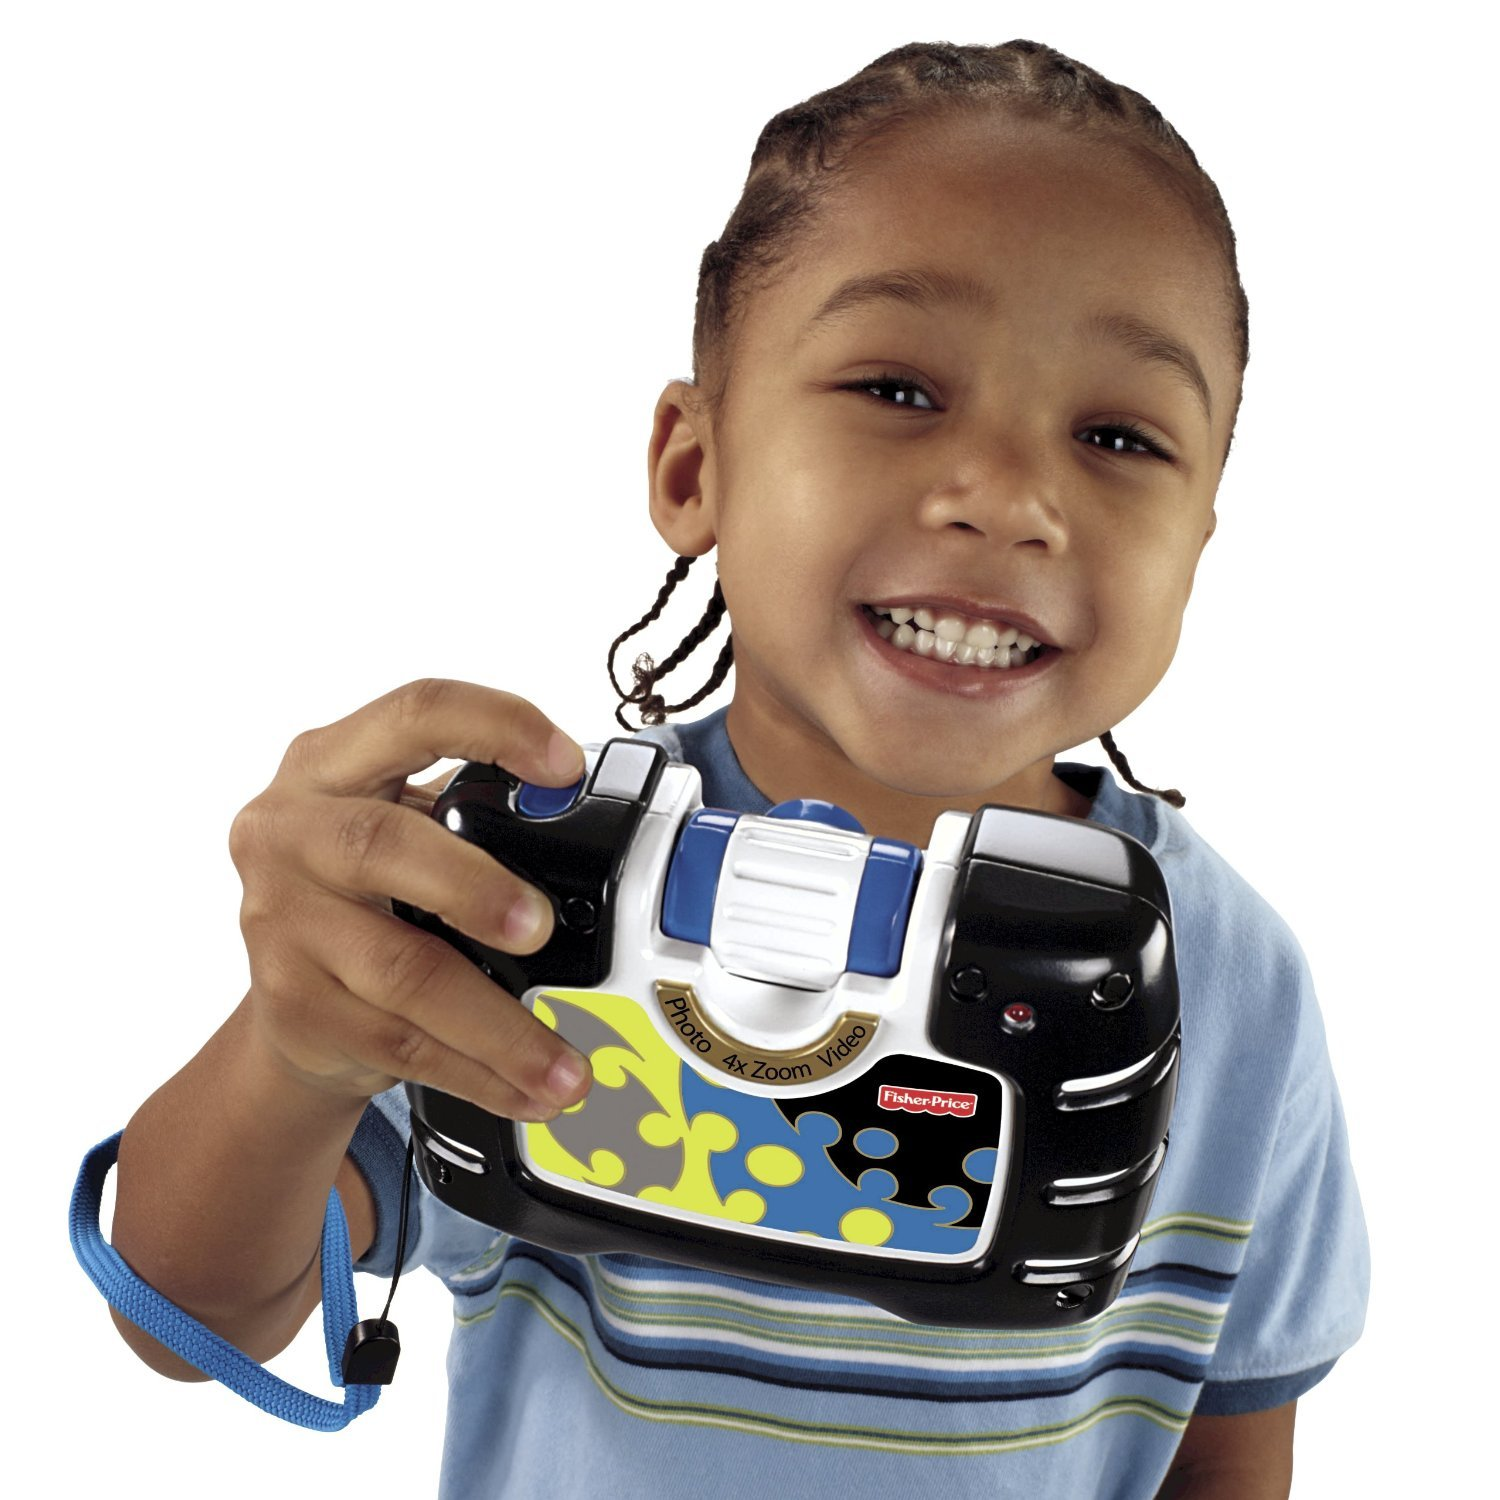 Fisher-Price Kid-Tough See Yourself Camera, Black by Fisher-Price (Image #3)